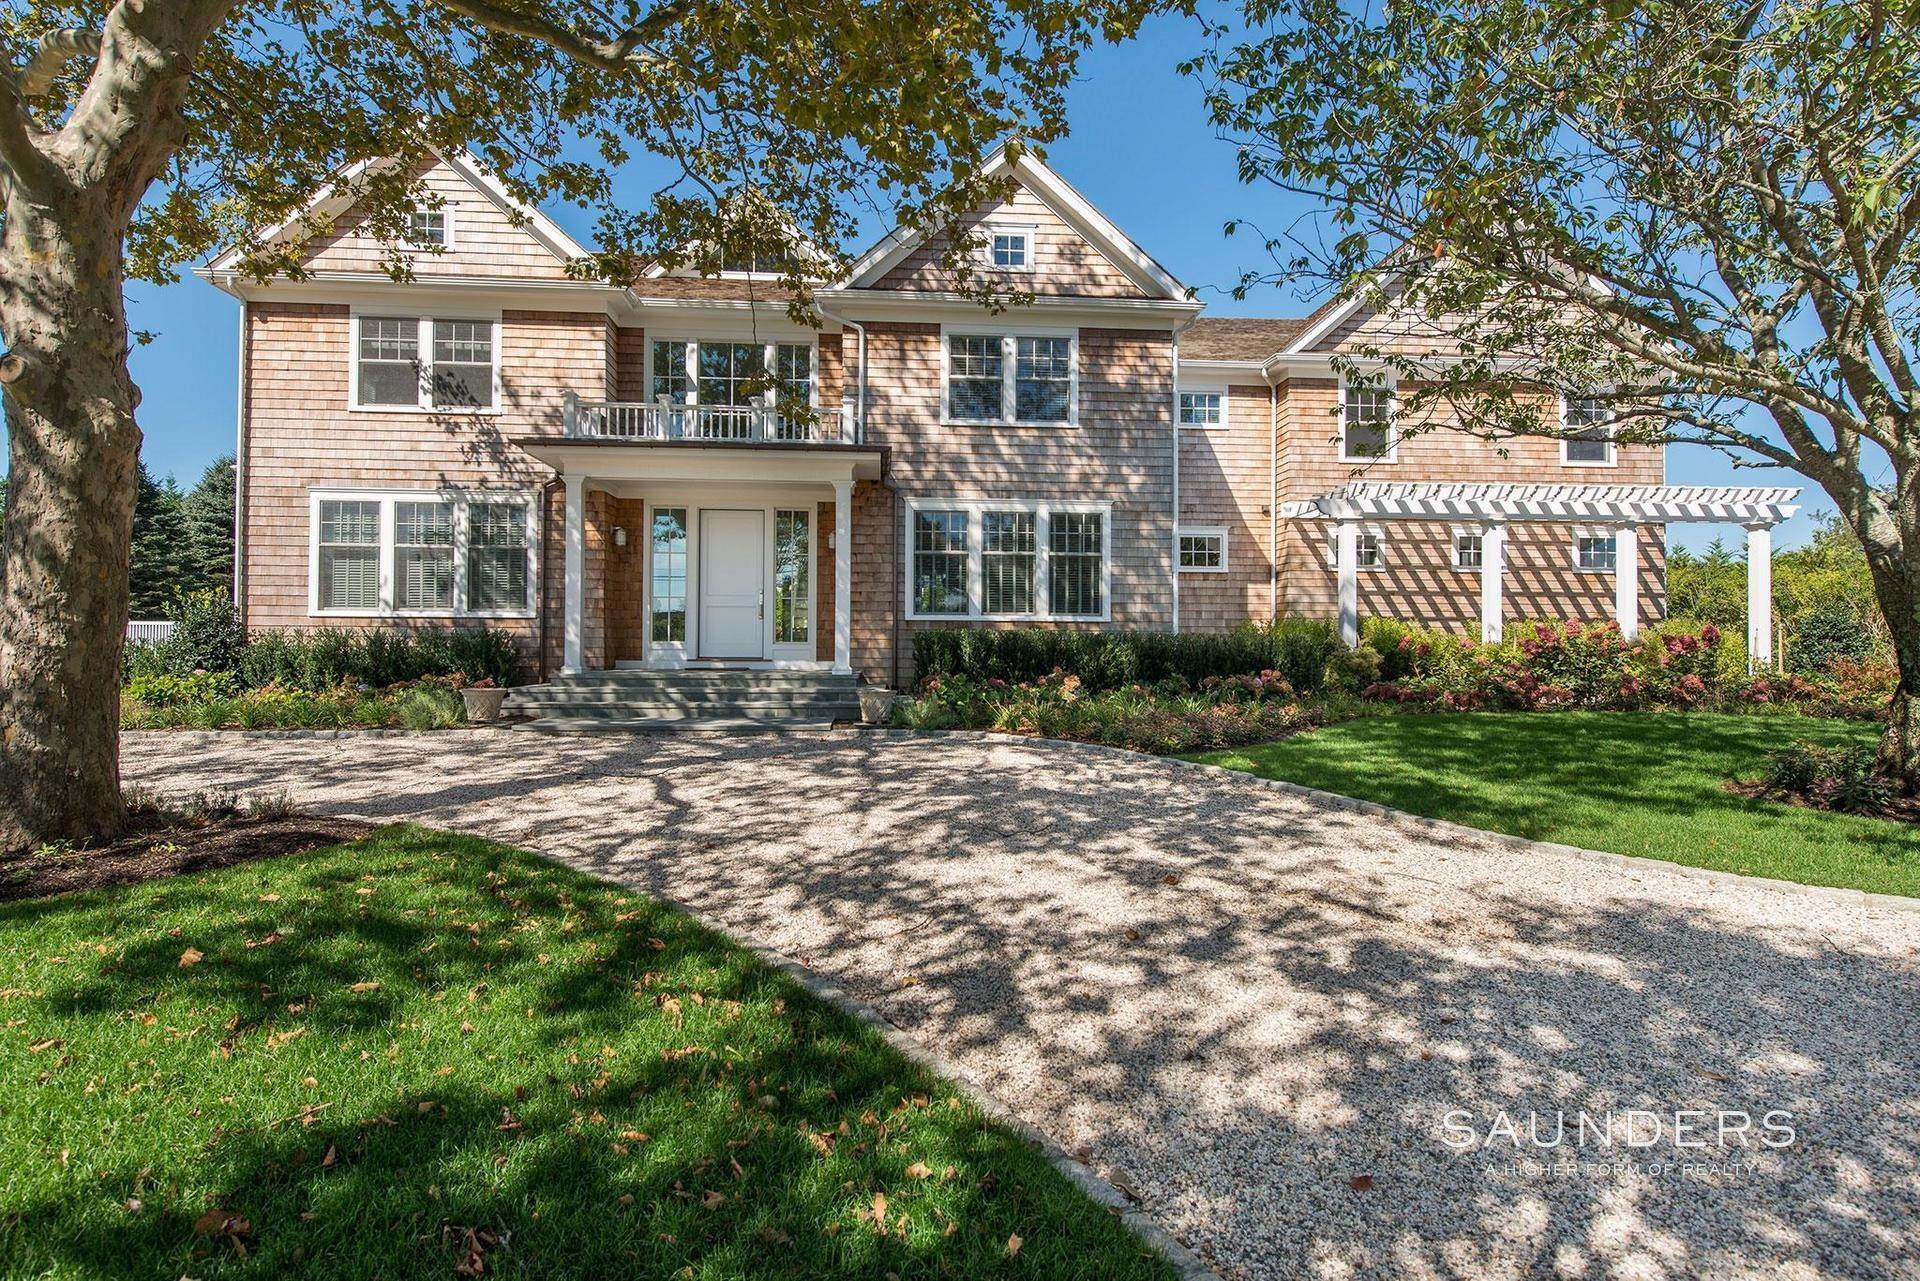 Single Family Homes at Bridgehampton South Custom Home 94 Kellis Pond Lane, Bridgehampton, Southampton Town, NY 11932